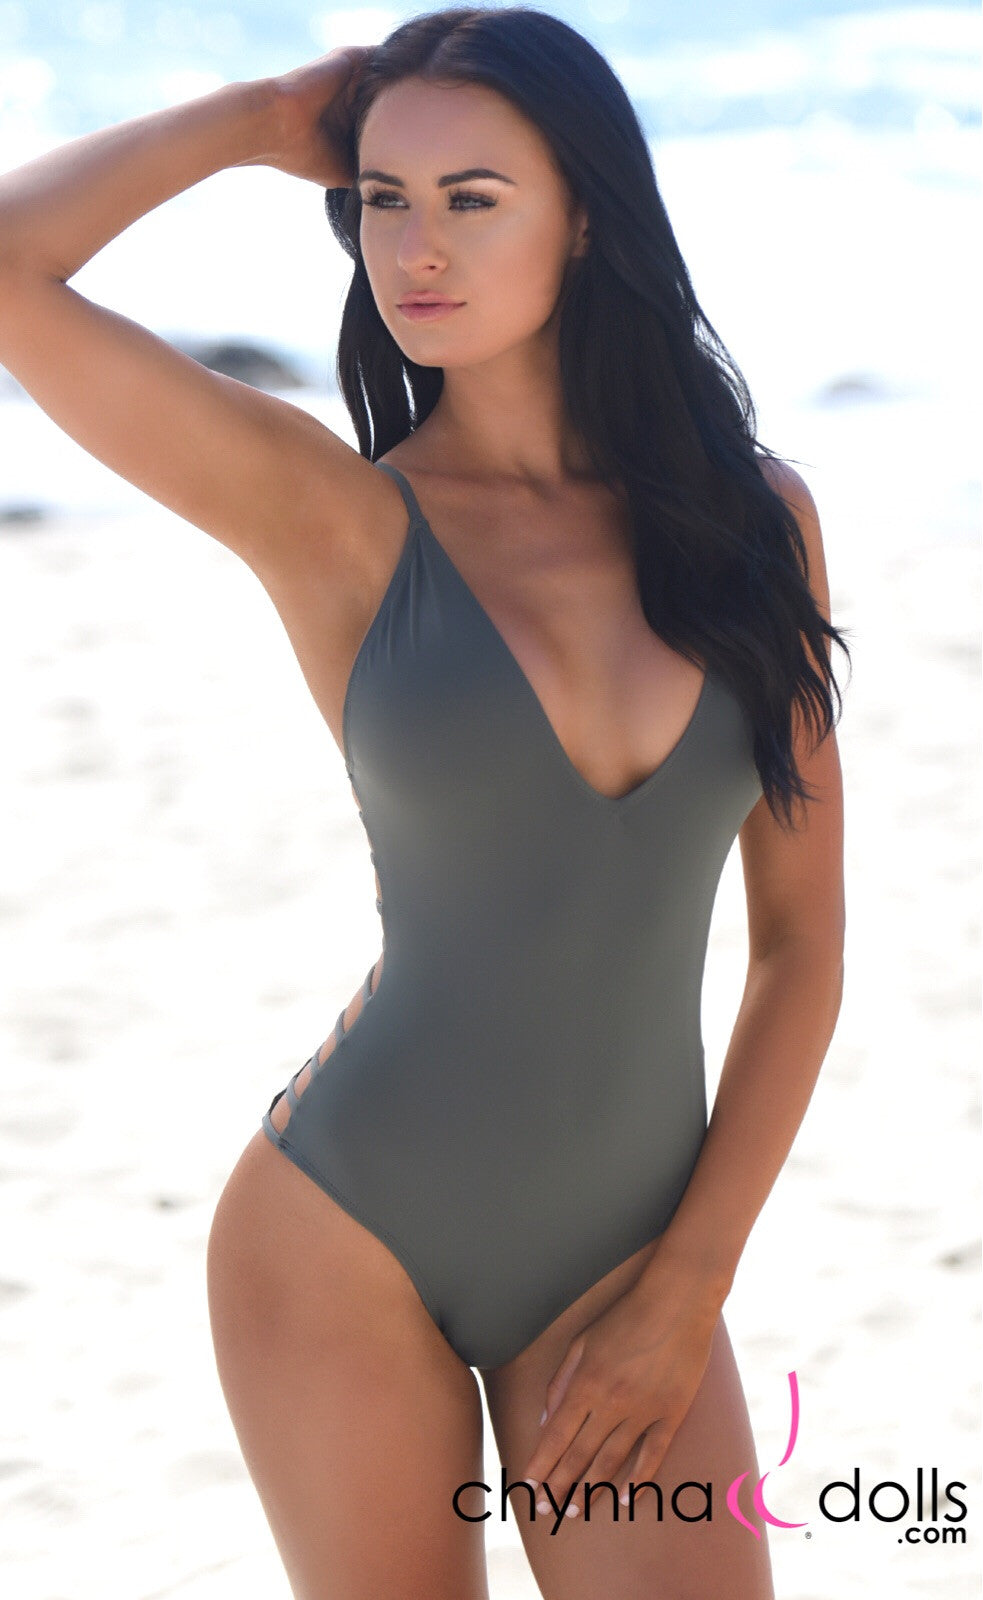 Tuscany: One Piece Swimsuit w/ Ladder Details at the Sides in Stone Gray